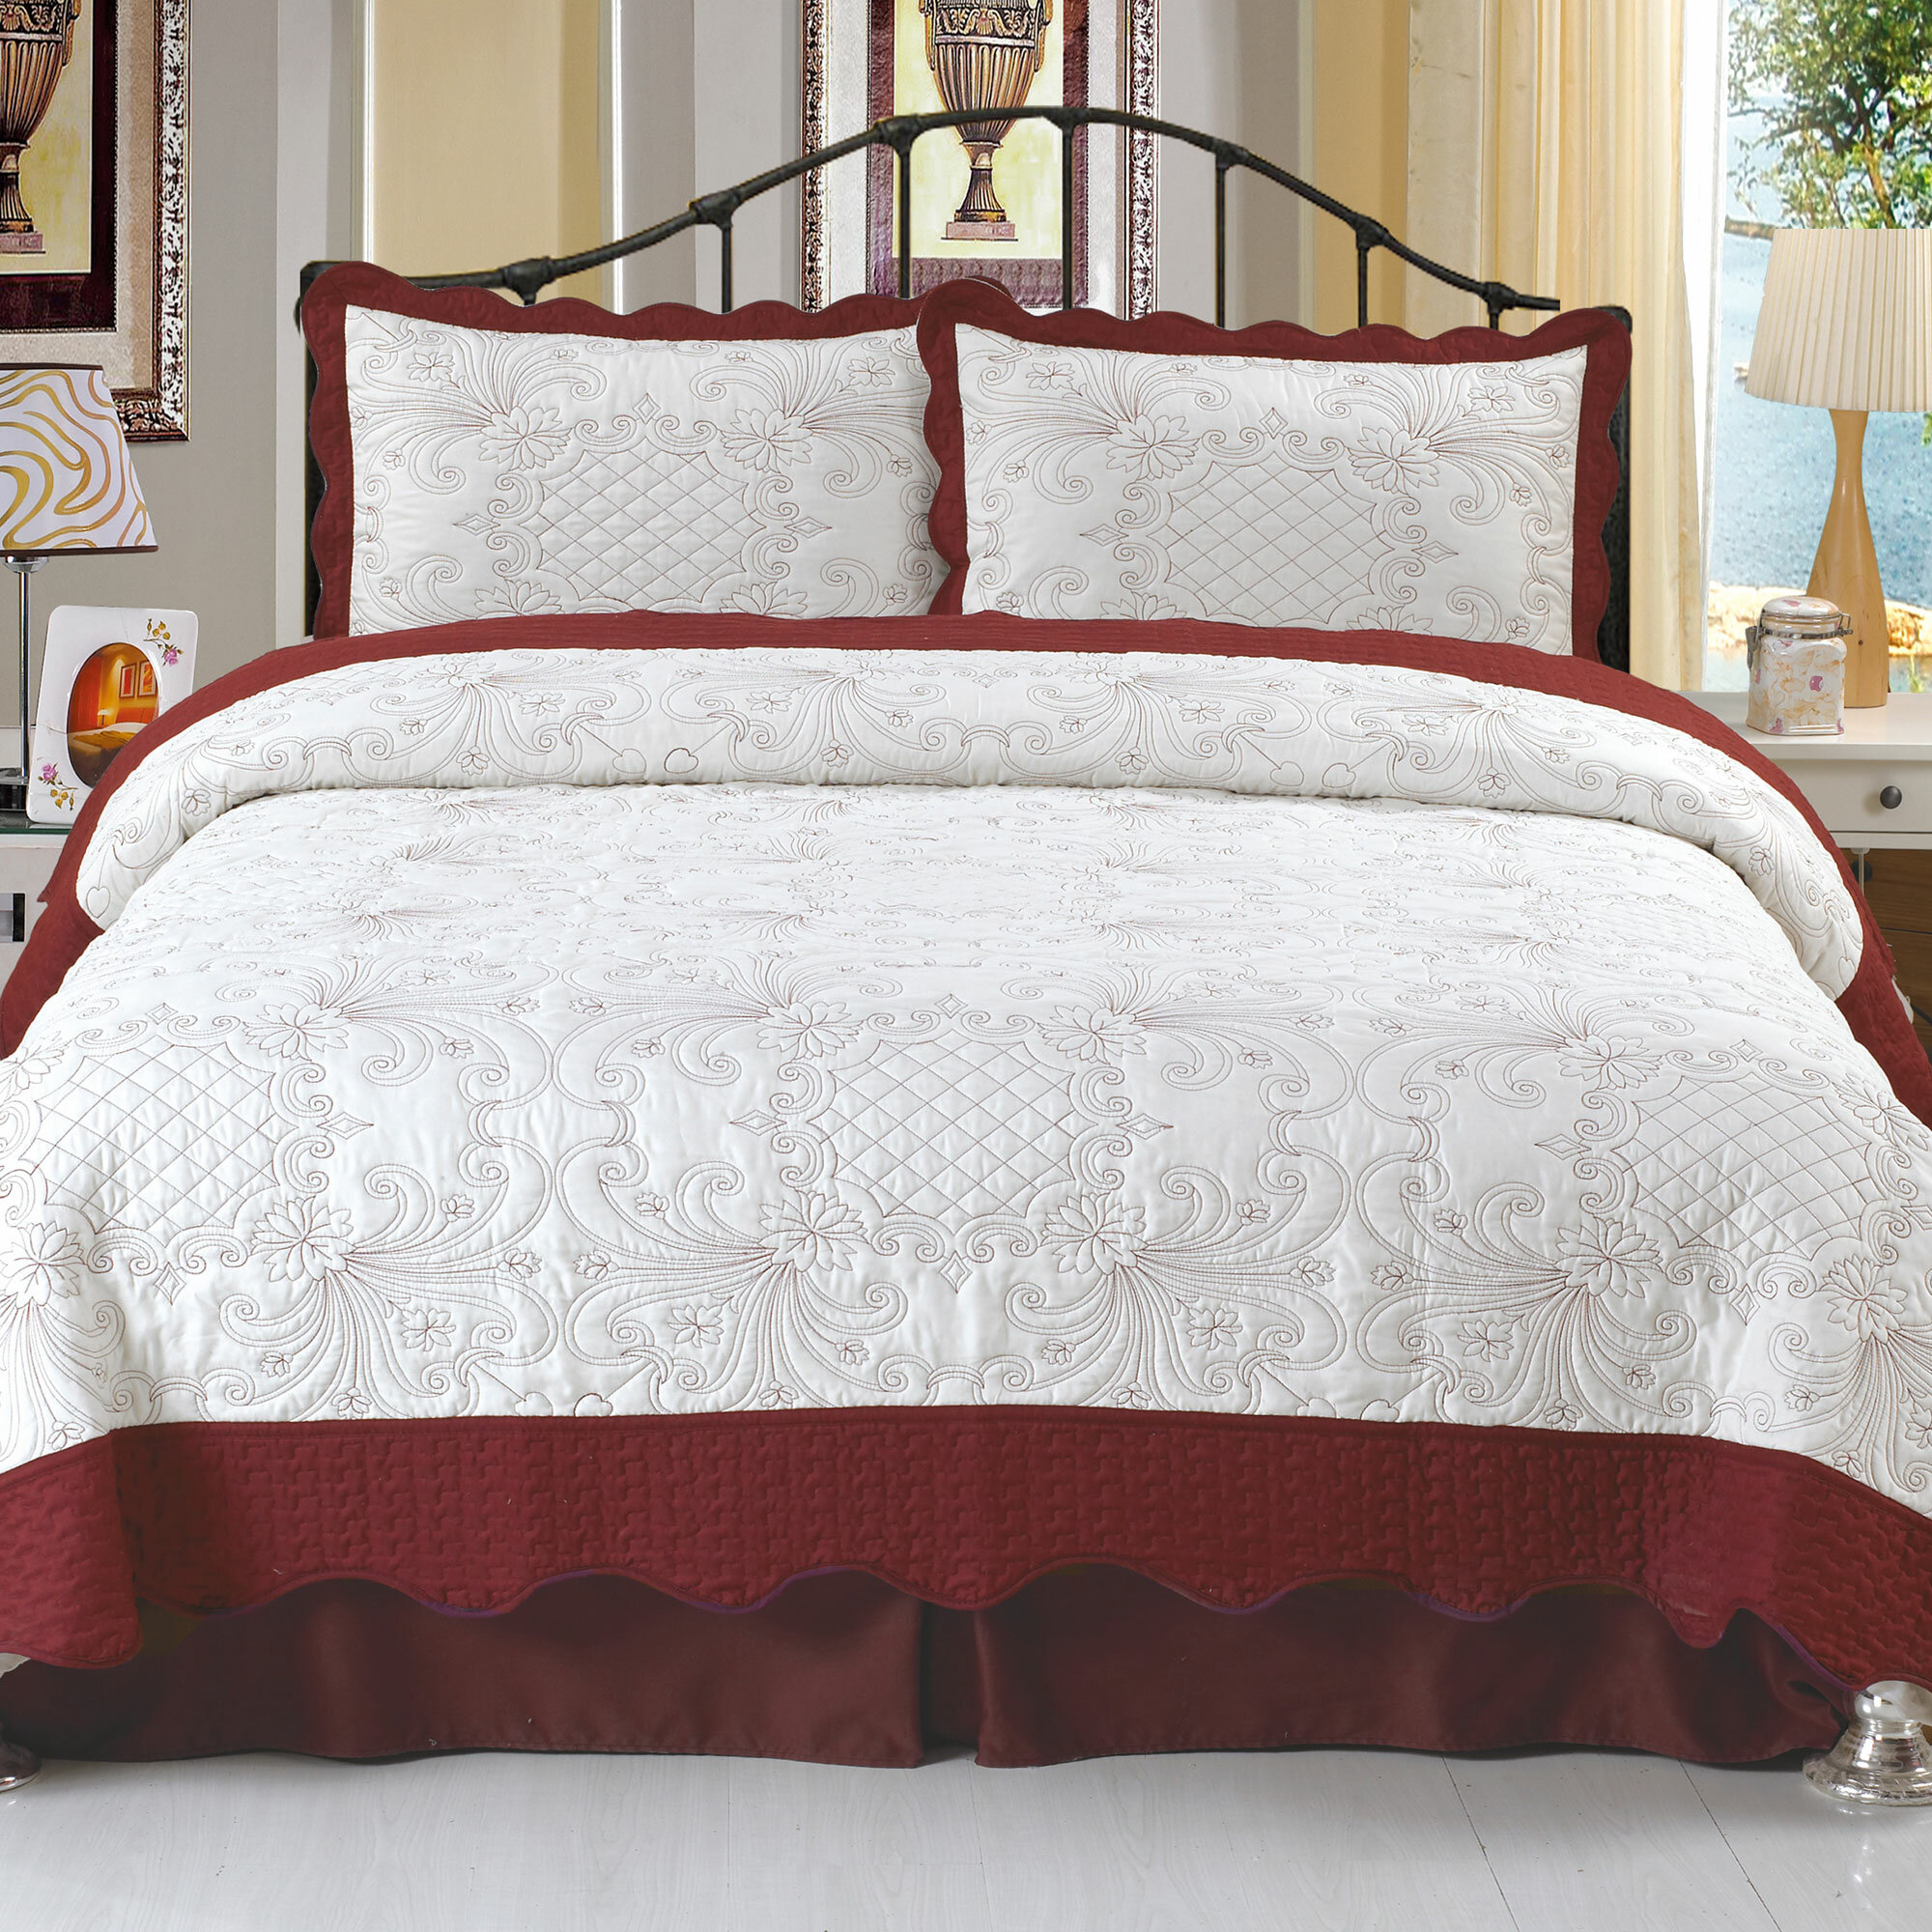 Lavish Home Juliette Embroidered Quilt Set Reviews Wayfair